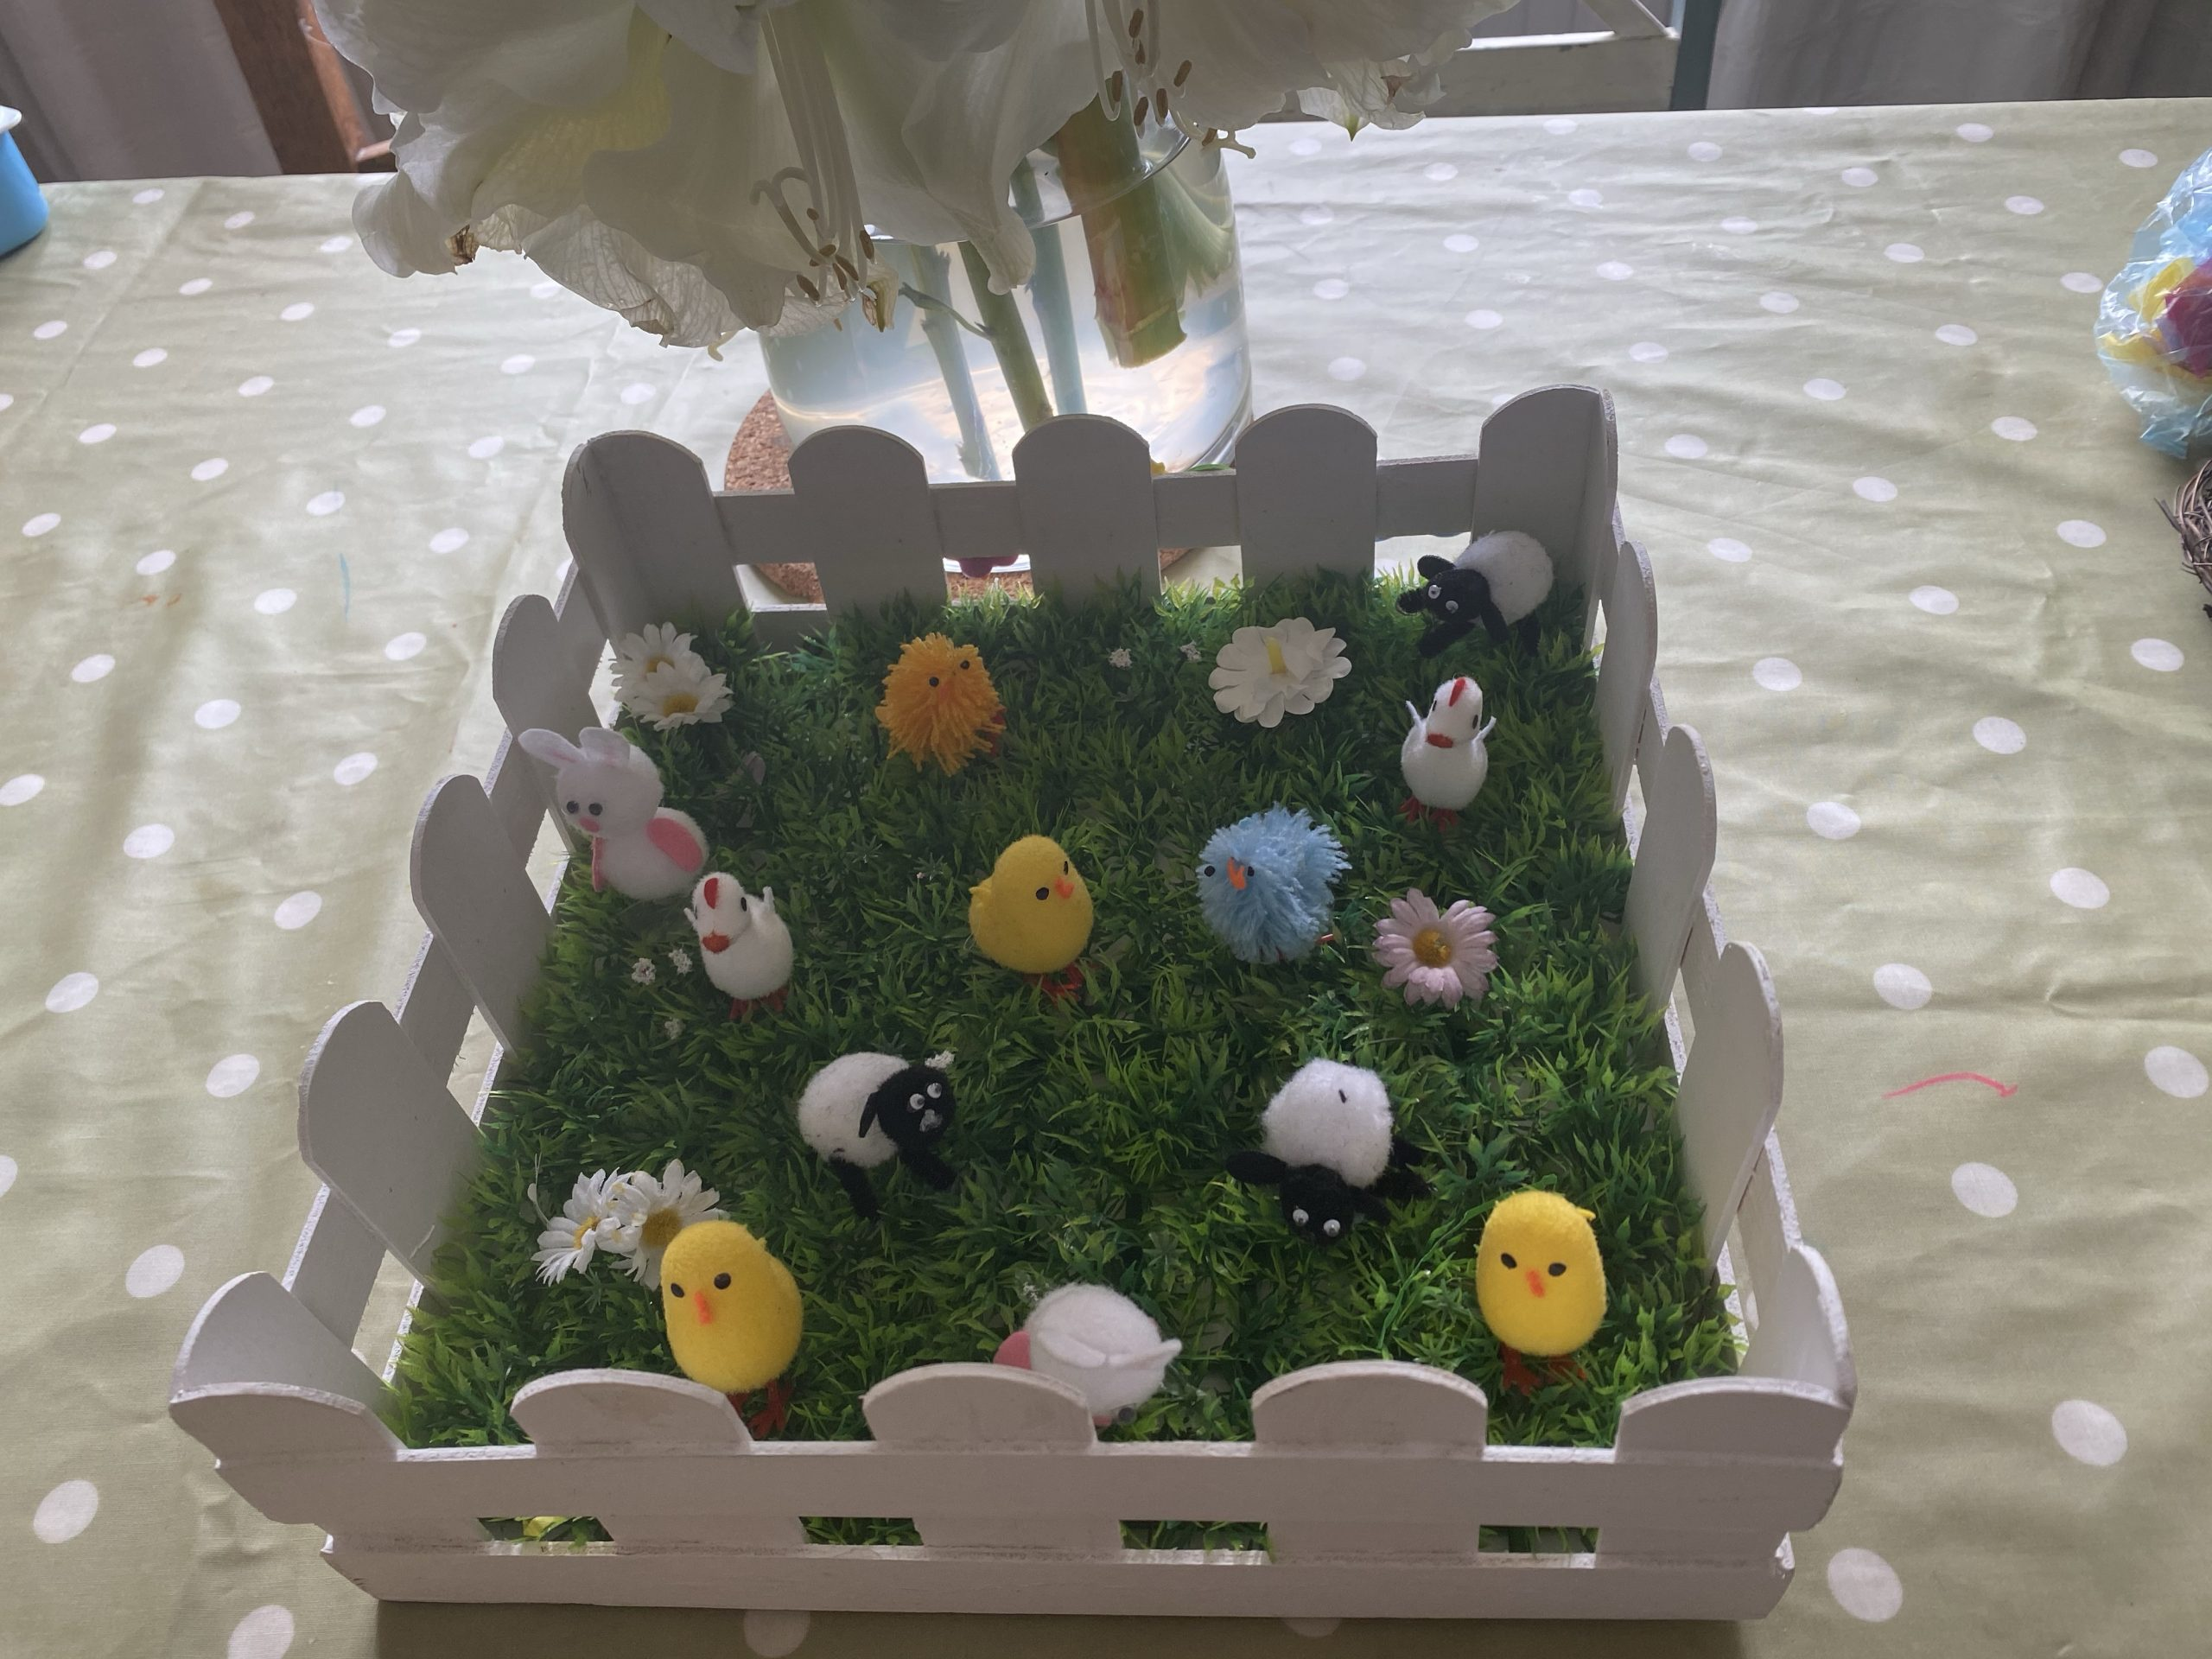 a faux Easter garden filled with little chicks, bunnies, sheeps and geese